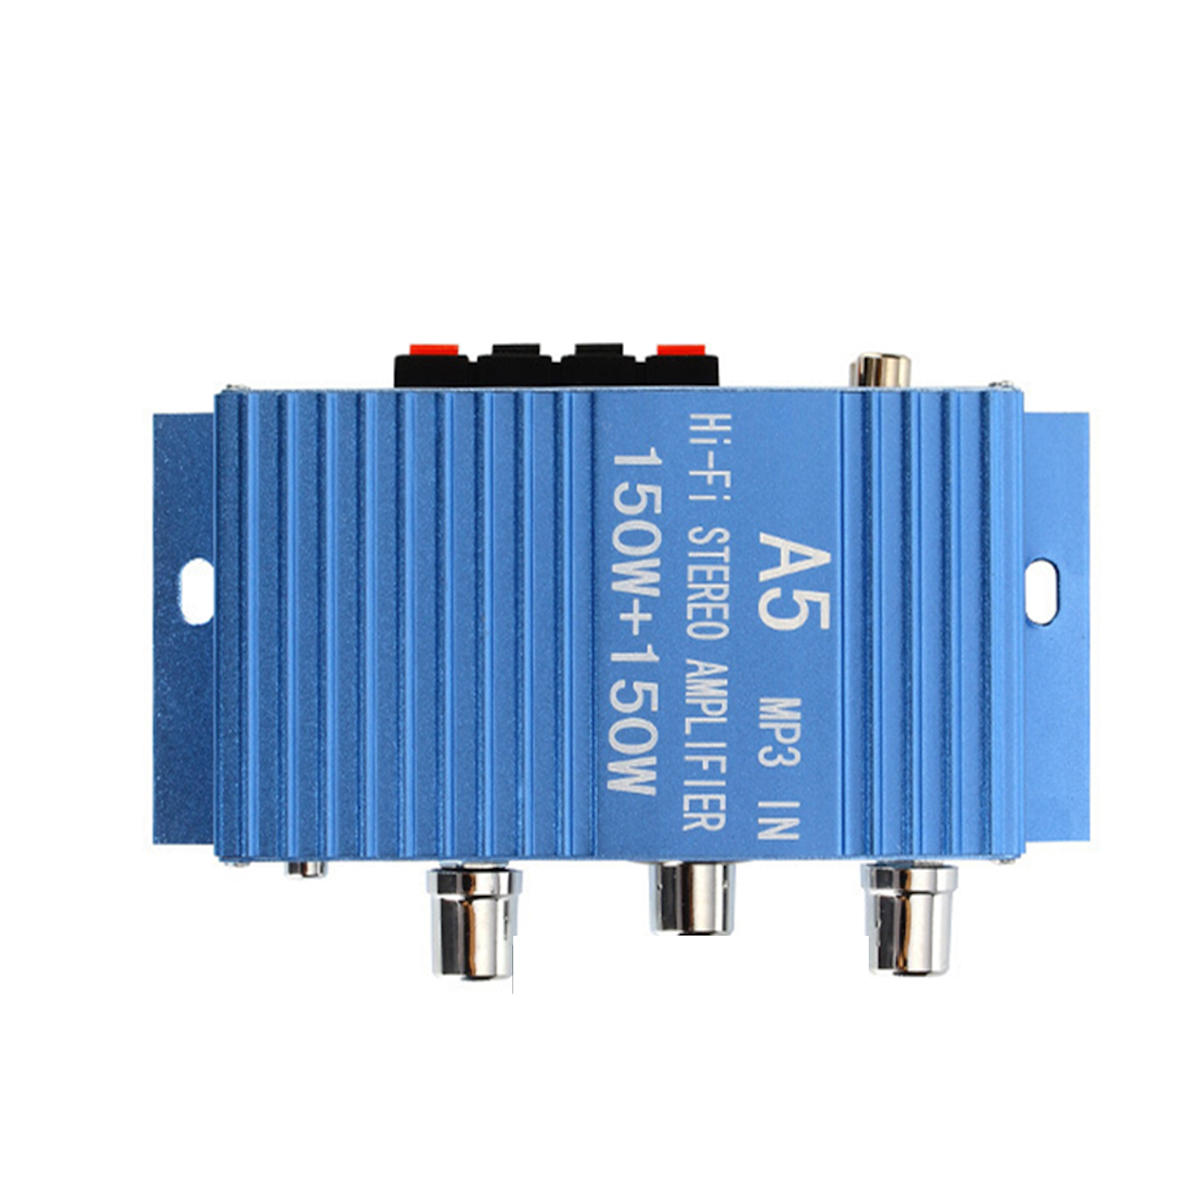 DX-A5 DC 12-15V Car Audio High Power Amplifier Amp Board Powerful Subwoofer Bass 2 Channels Amp for Car/Home/Theater